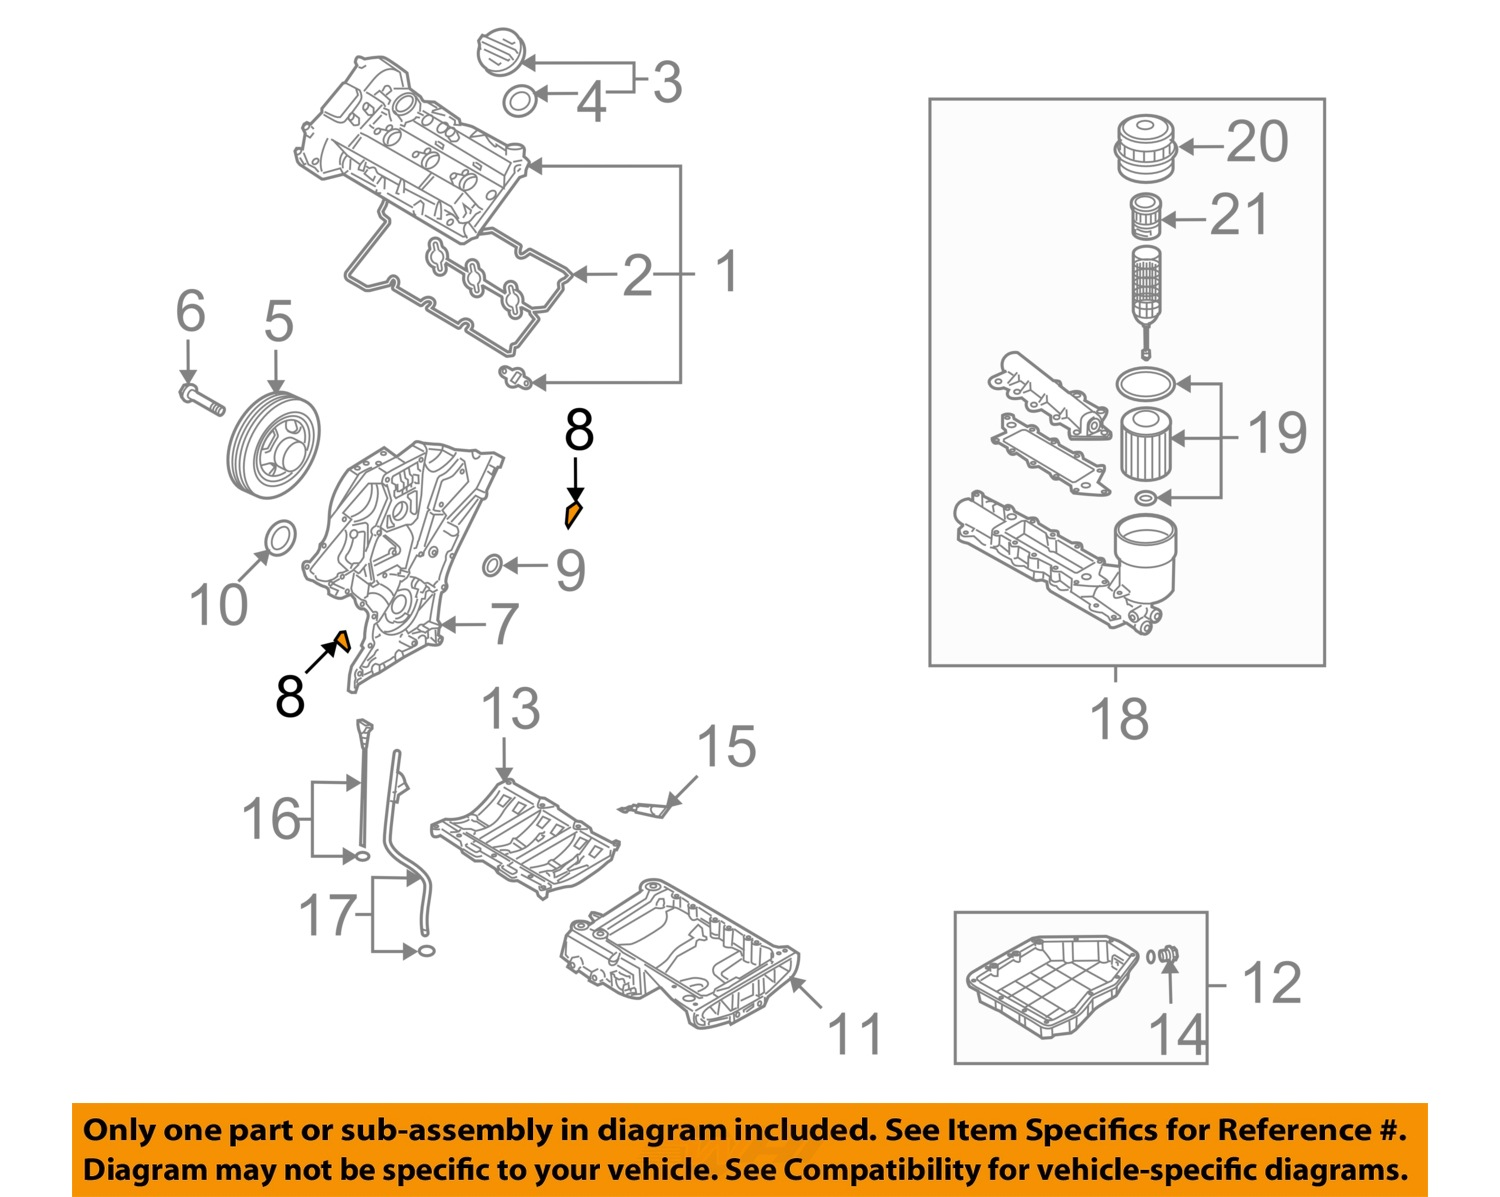 Hyundai Oem 07 17 Santa Fe Engine Timing Cover Gasket Right 2007 Entourage Diagram 8 On Only Genuine Oe Factory Original Item